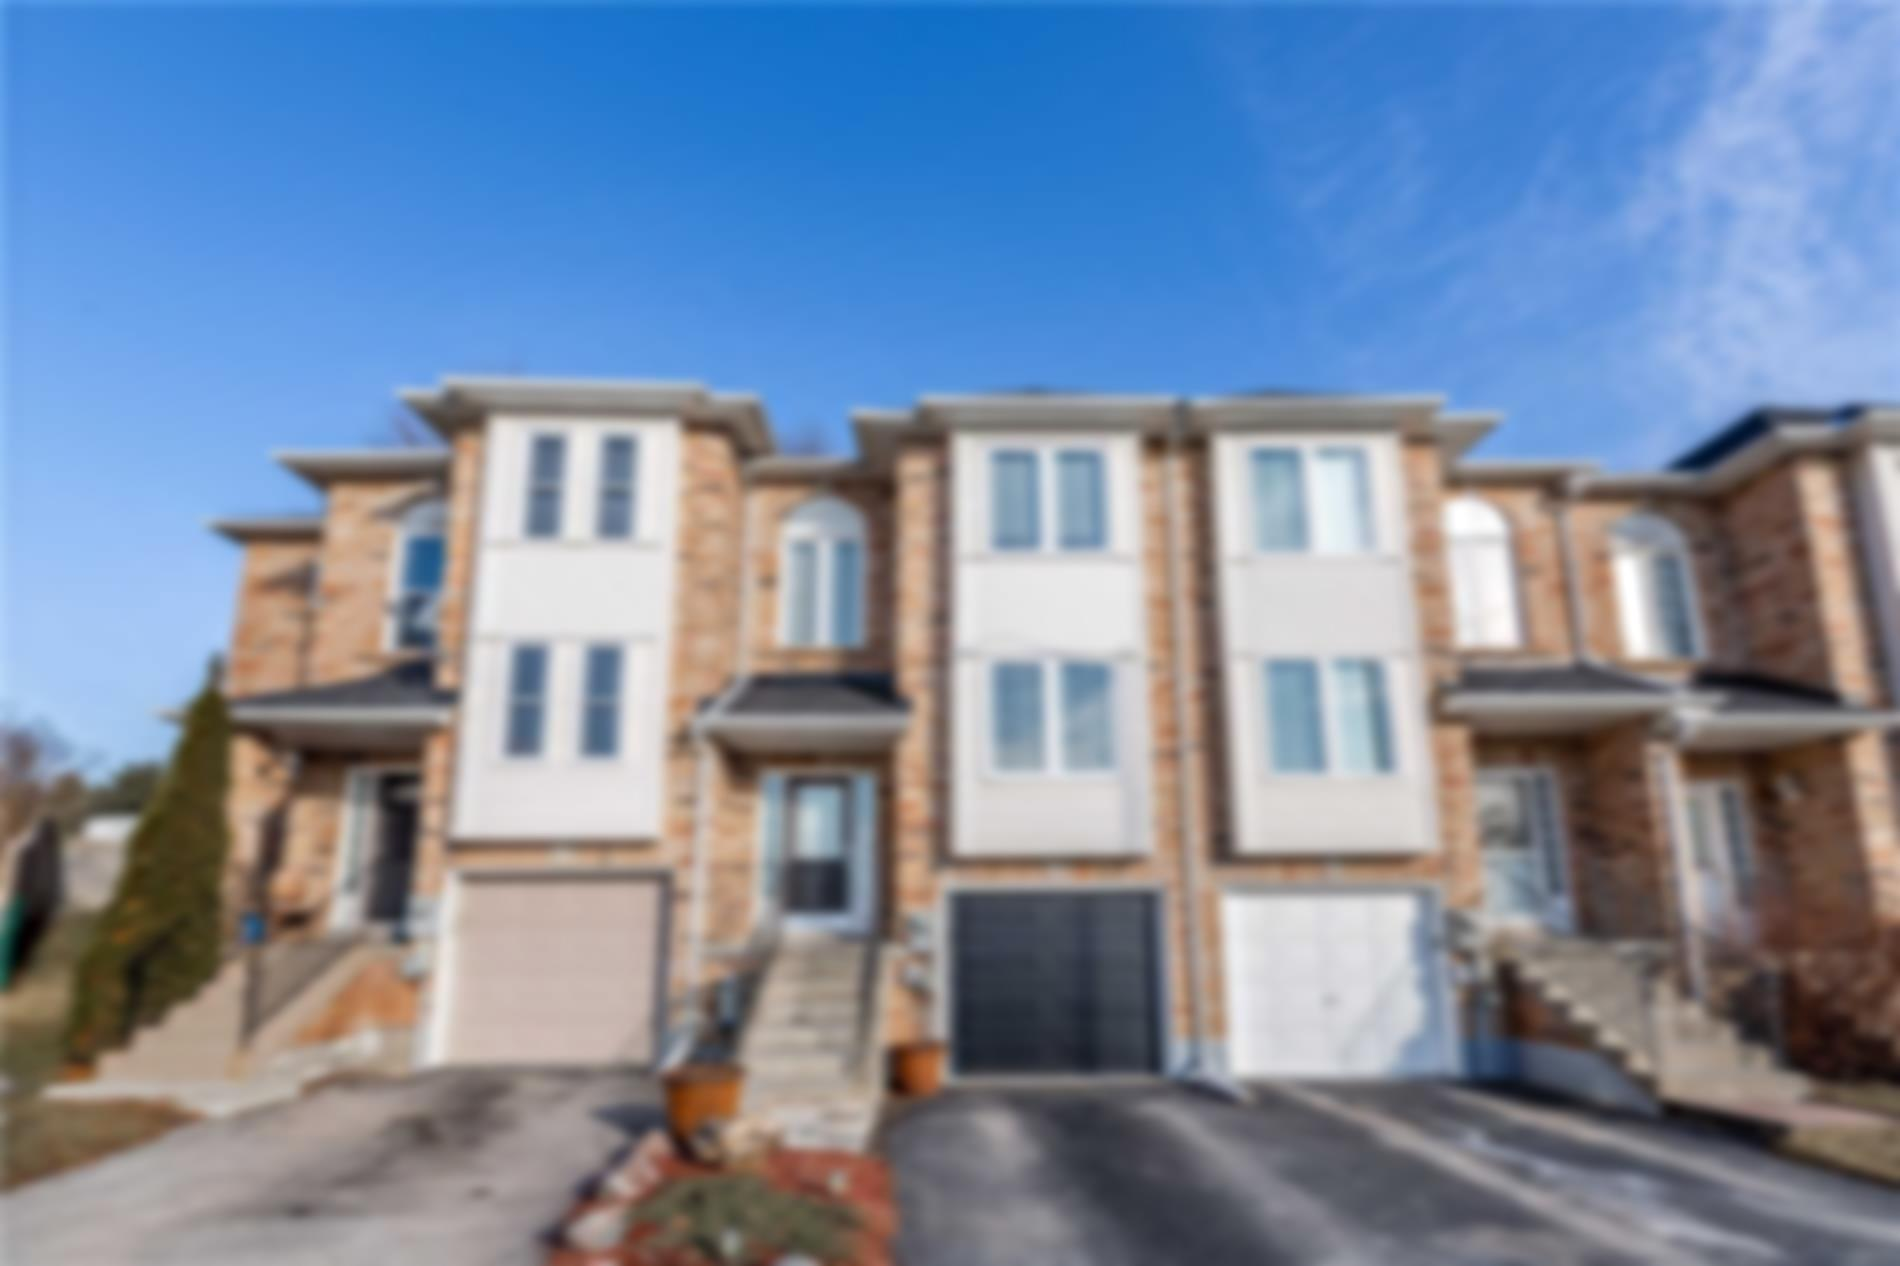 Natale Real Estate Natale Crt Bradford West Gwillimbury L3z3b1 Residential For